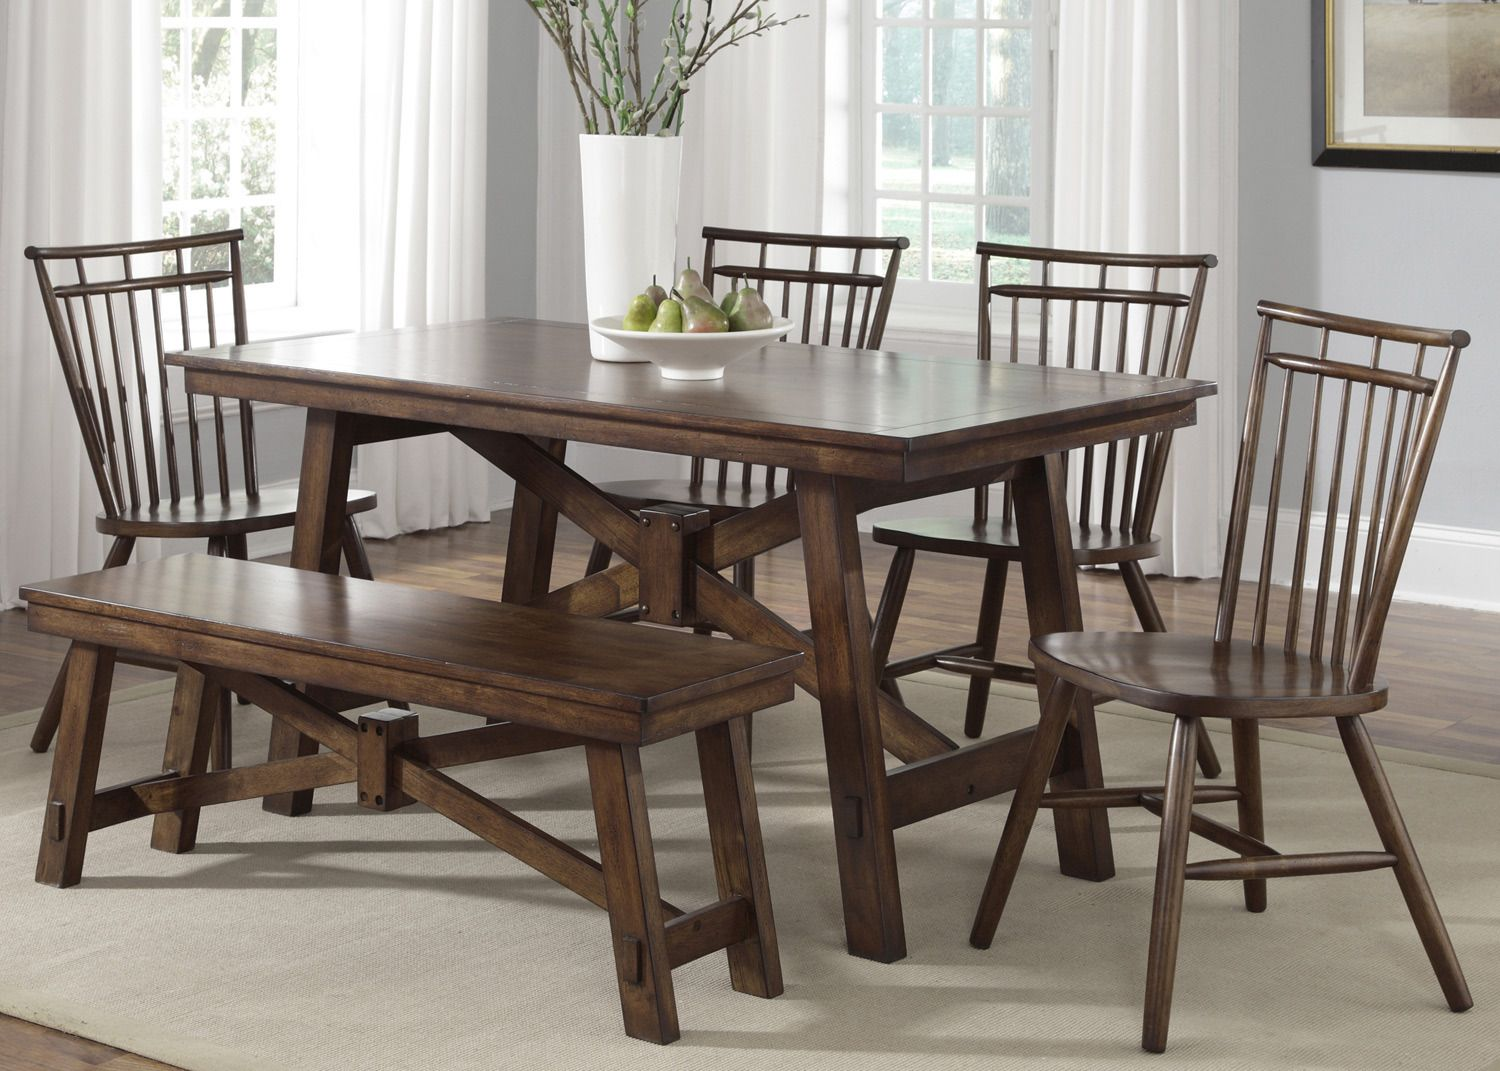 Creations Ii Rectangular Trestle Leg Table Dining Room Set